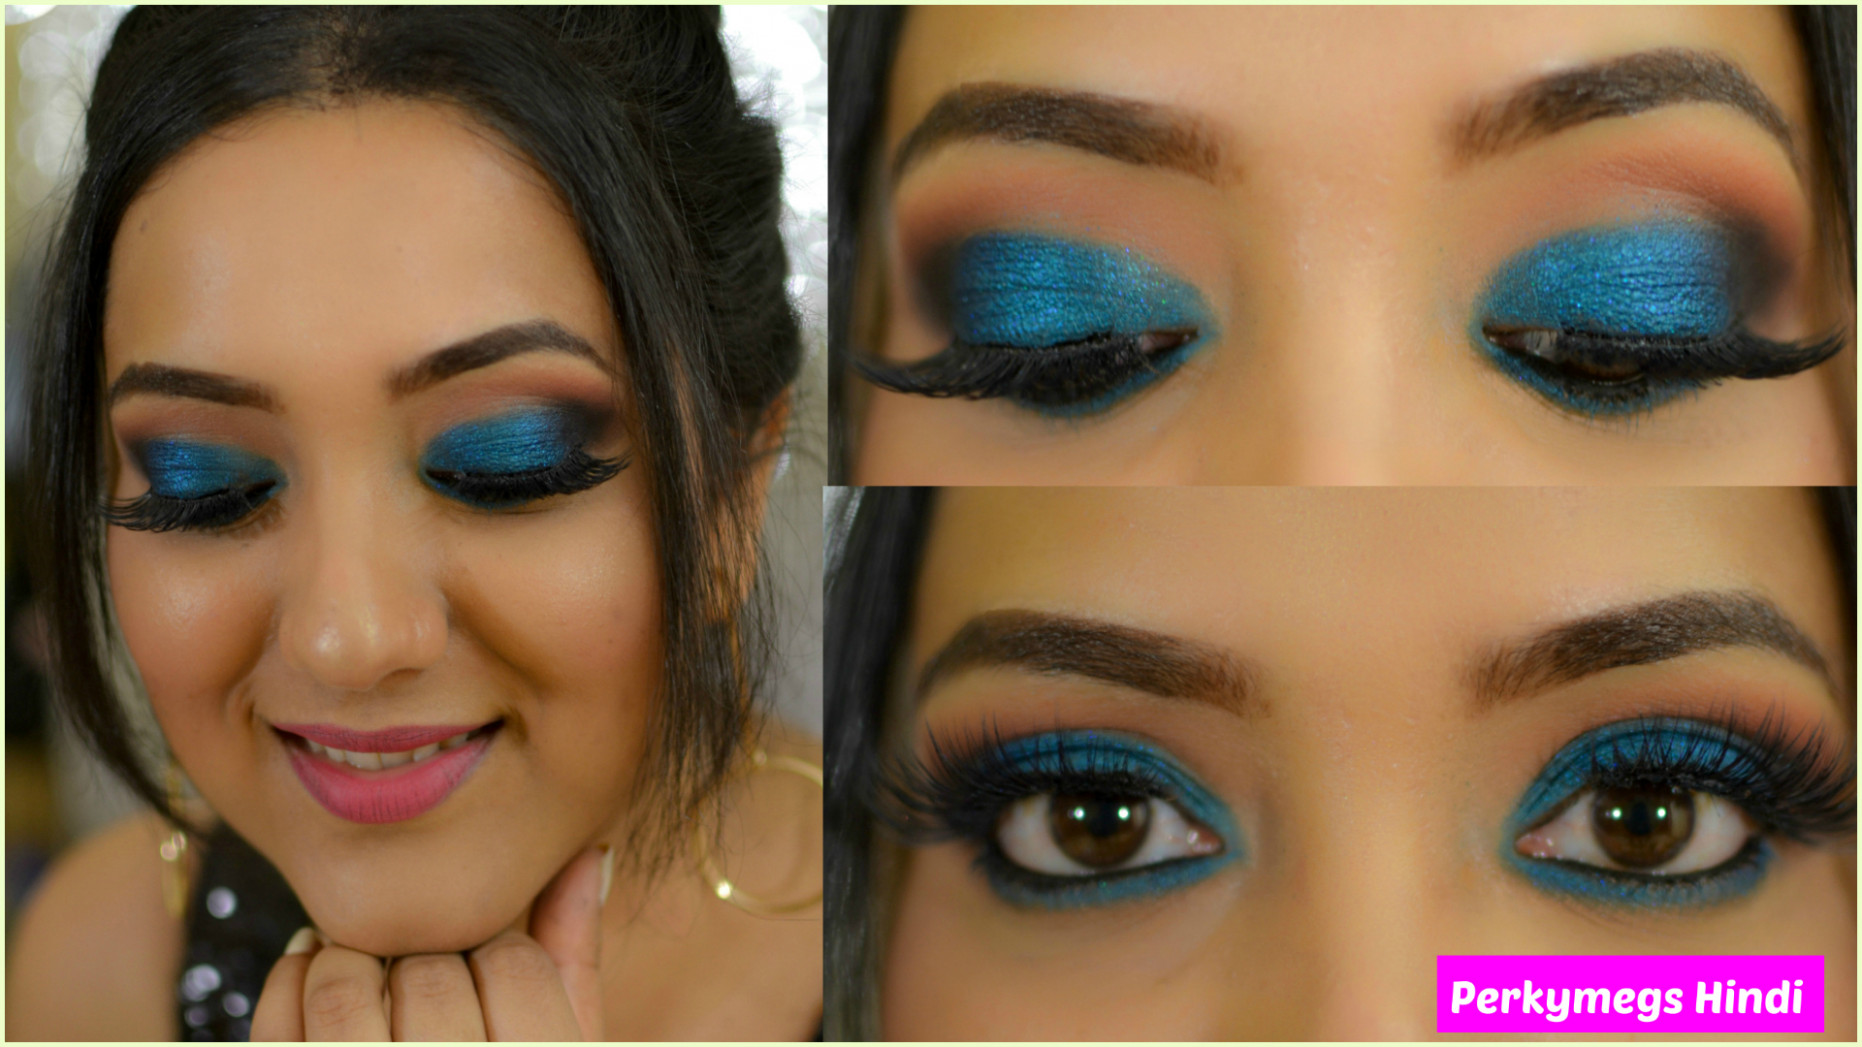 PERKYMEGS - Indian Fashion | Makeup | Beauty Blog